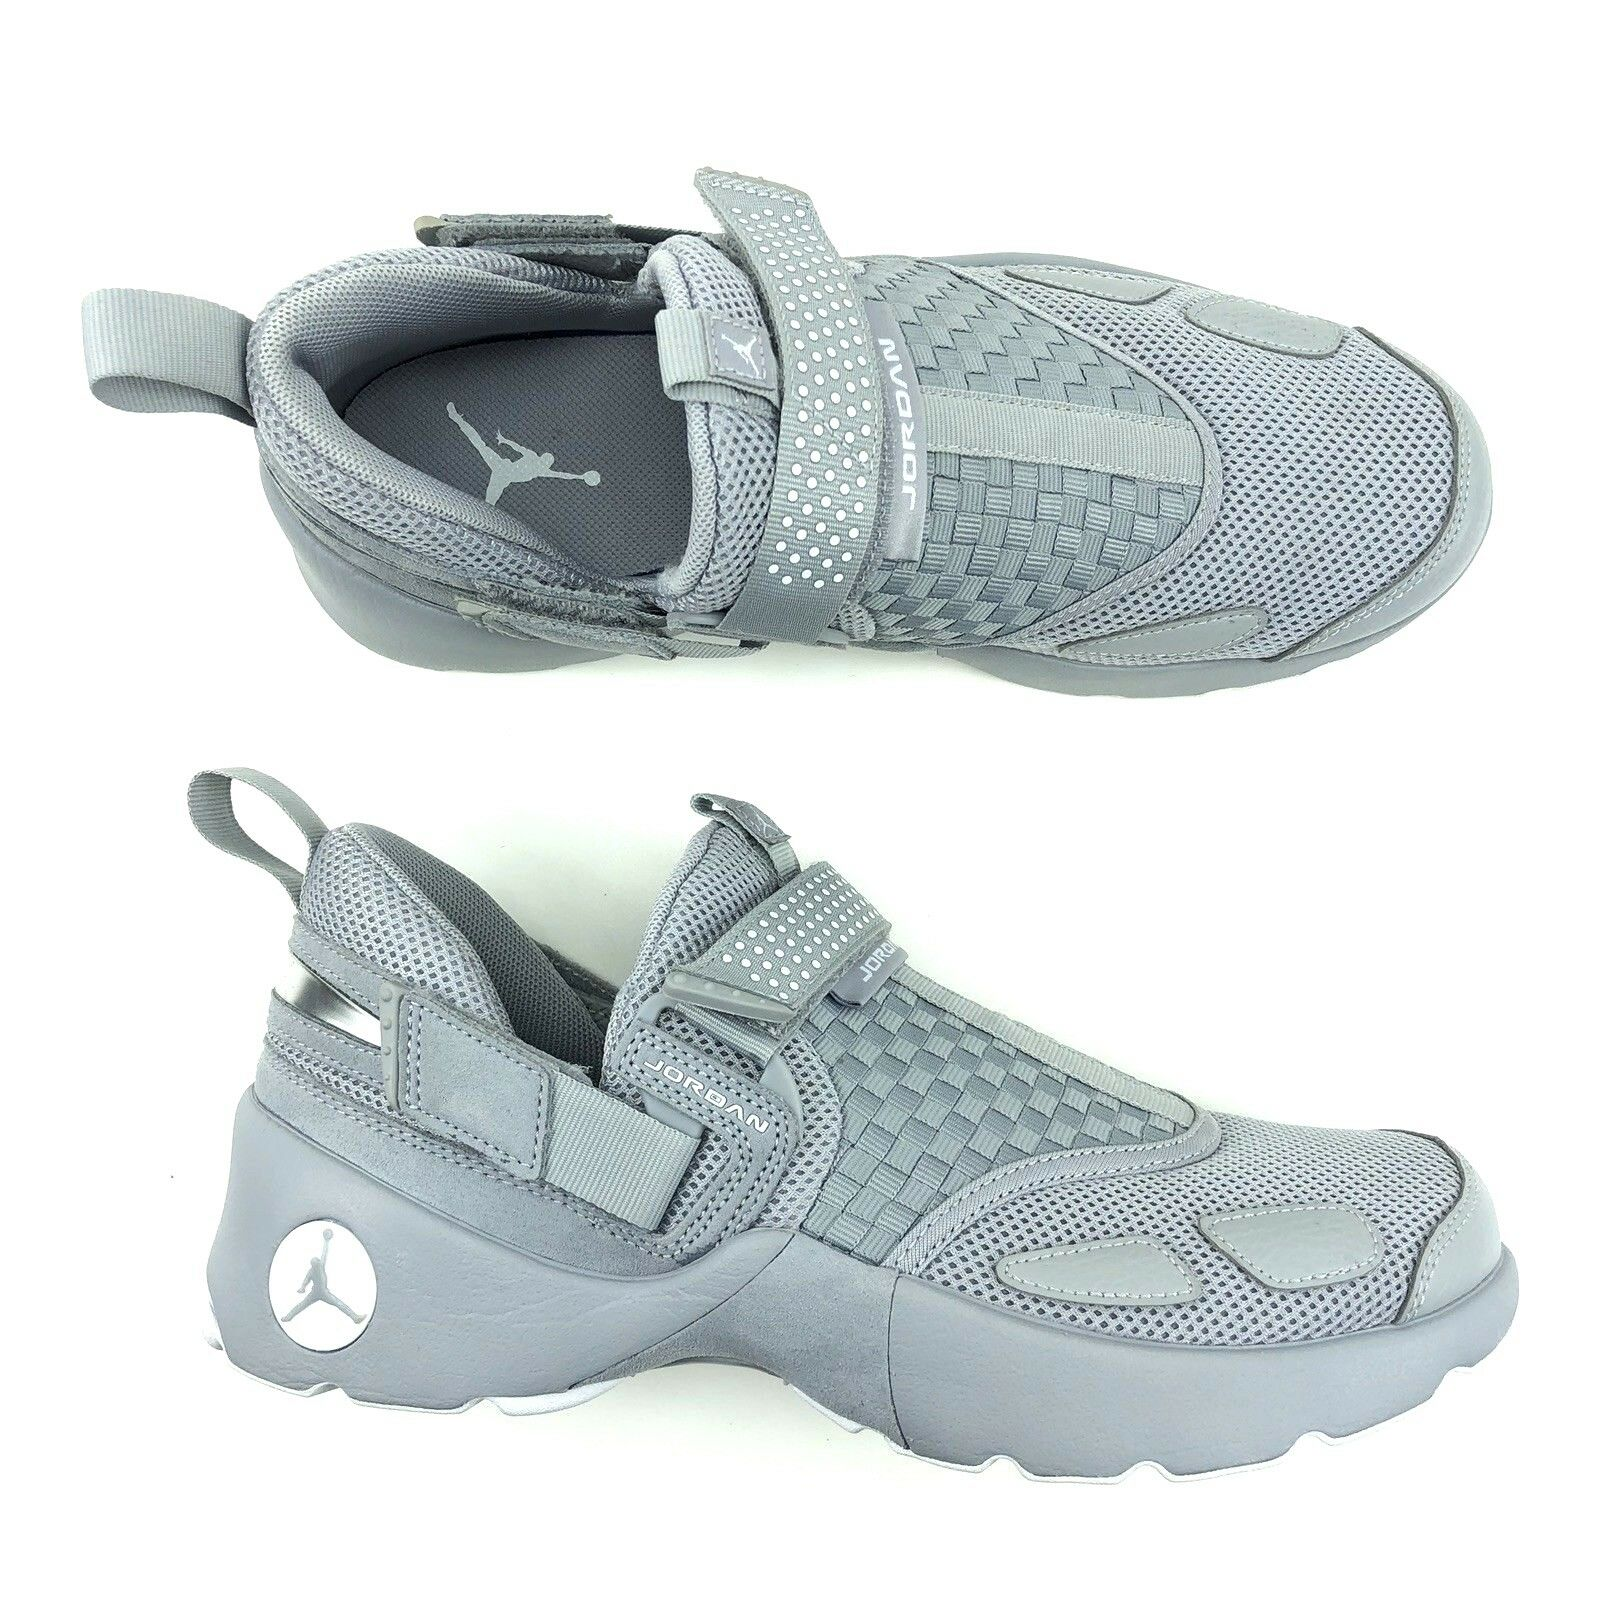 Air Jordan Trunner LX Low Grey White shoes Men Size 8